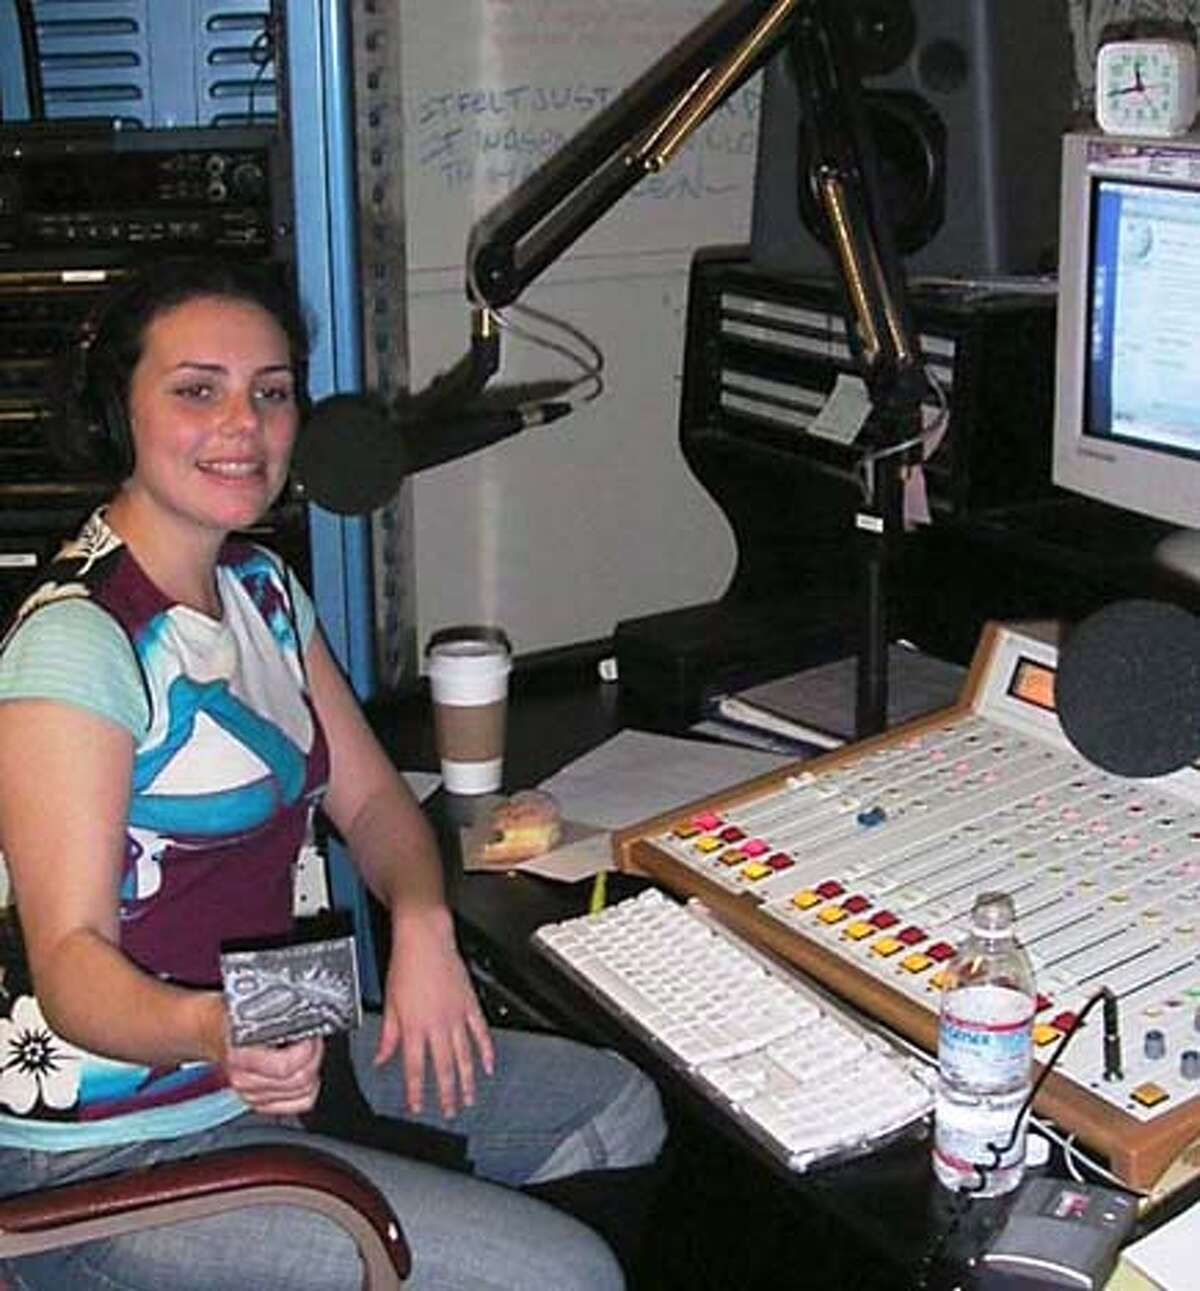 Photo of Irene McGee, who has a radio program on KSFS, the station at San Francisco State.